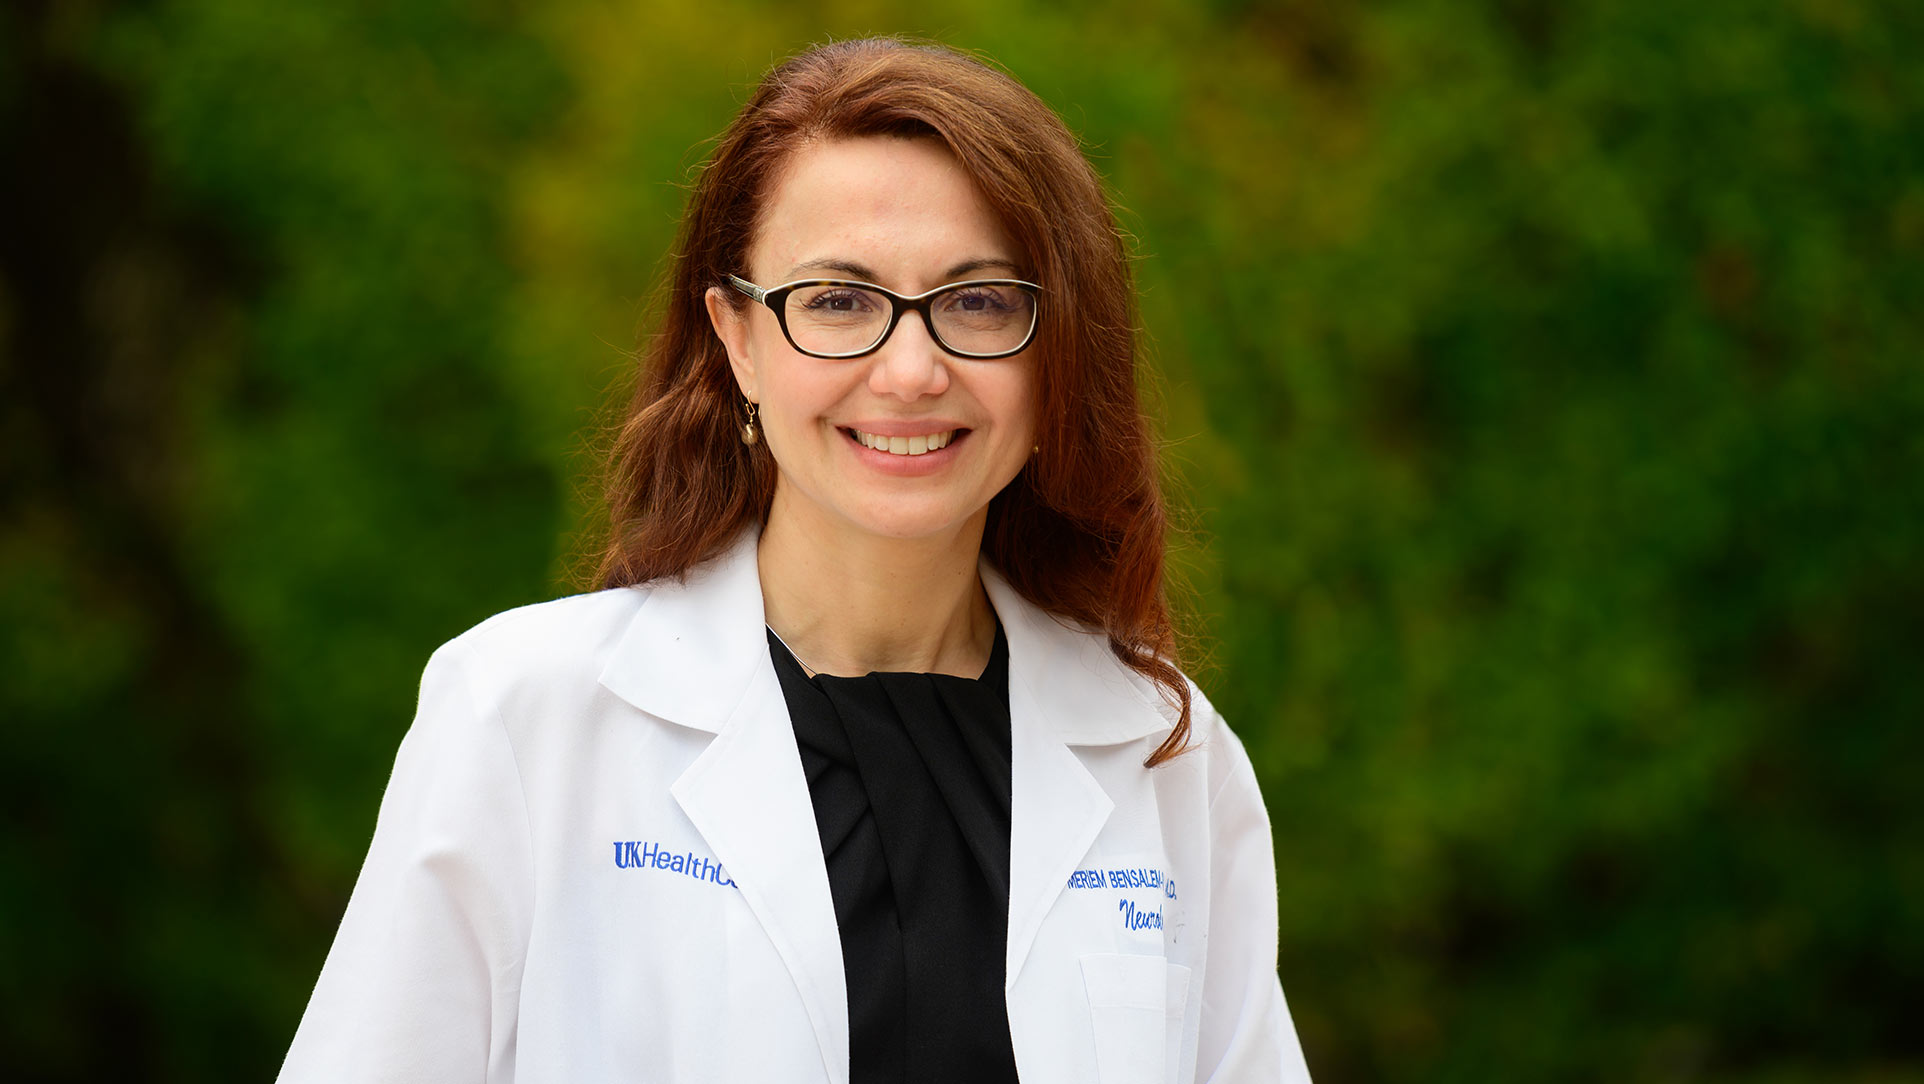 Dr. Bensalem-Owen stands with a broad smile in an outside setting.